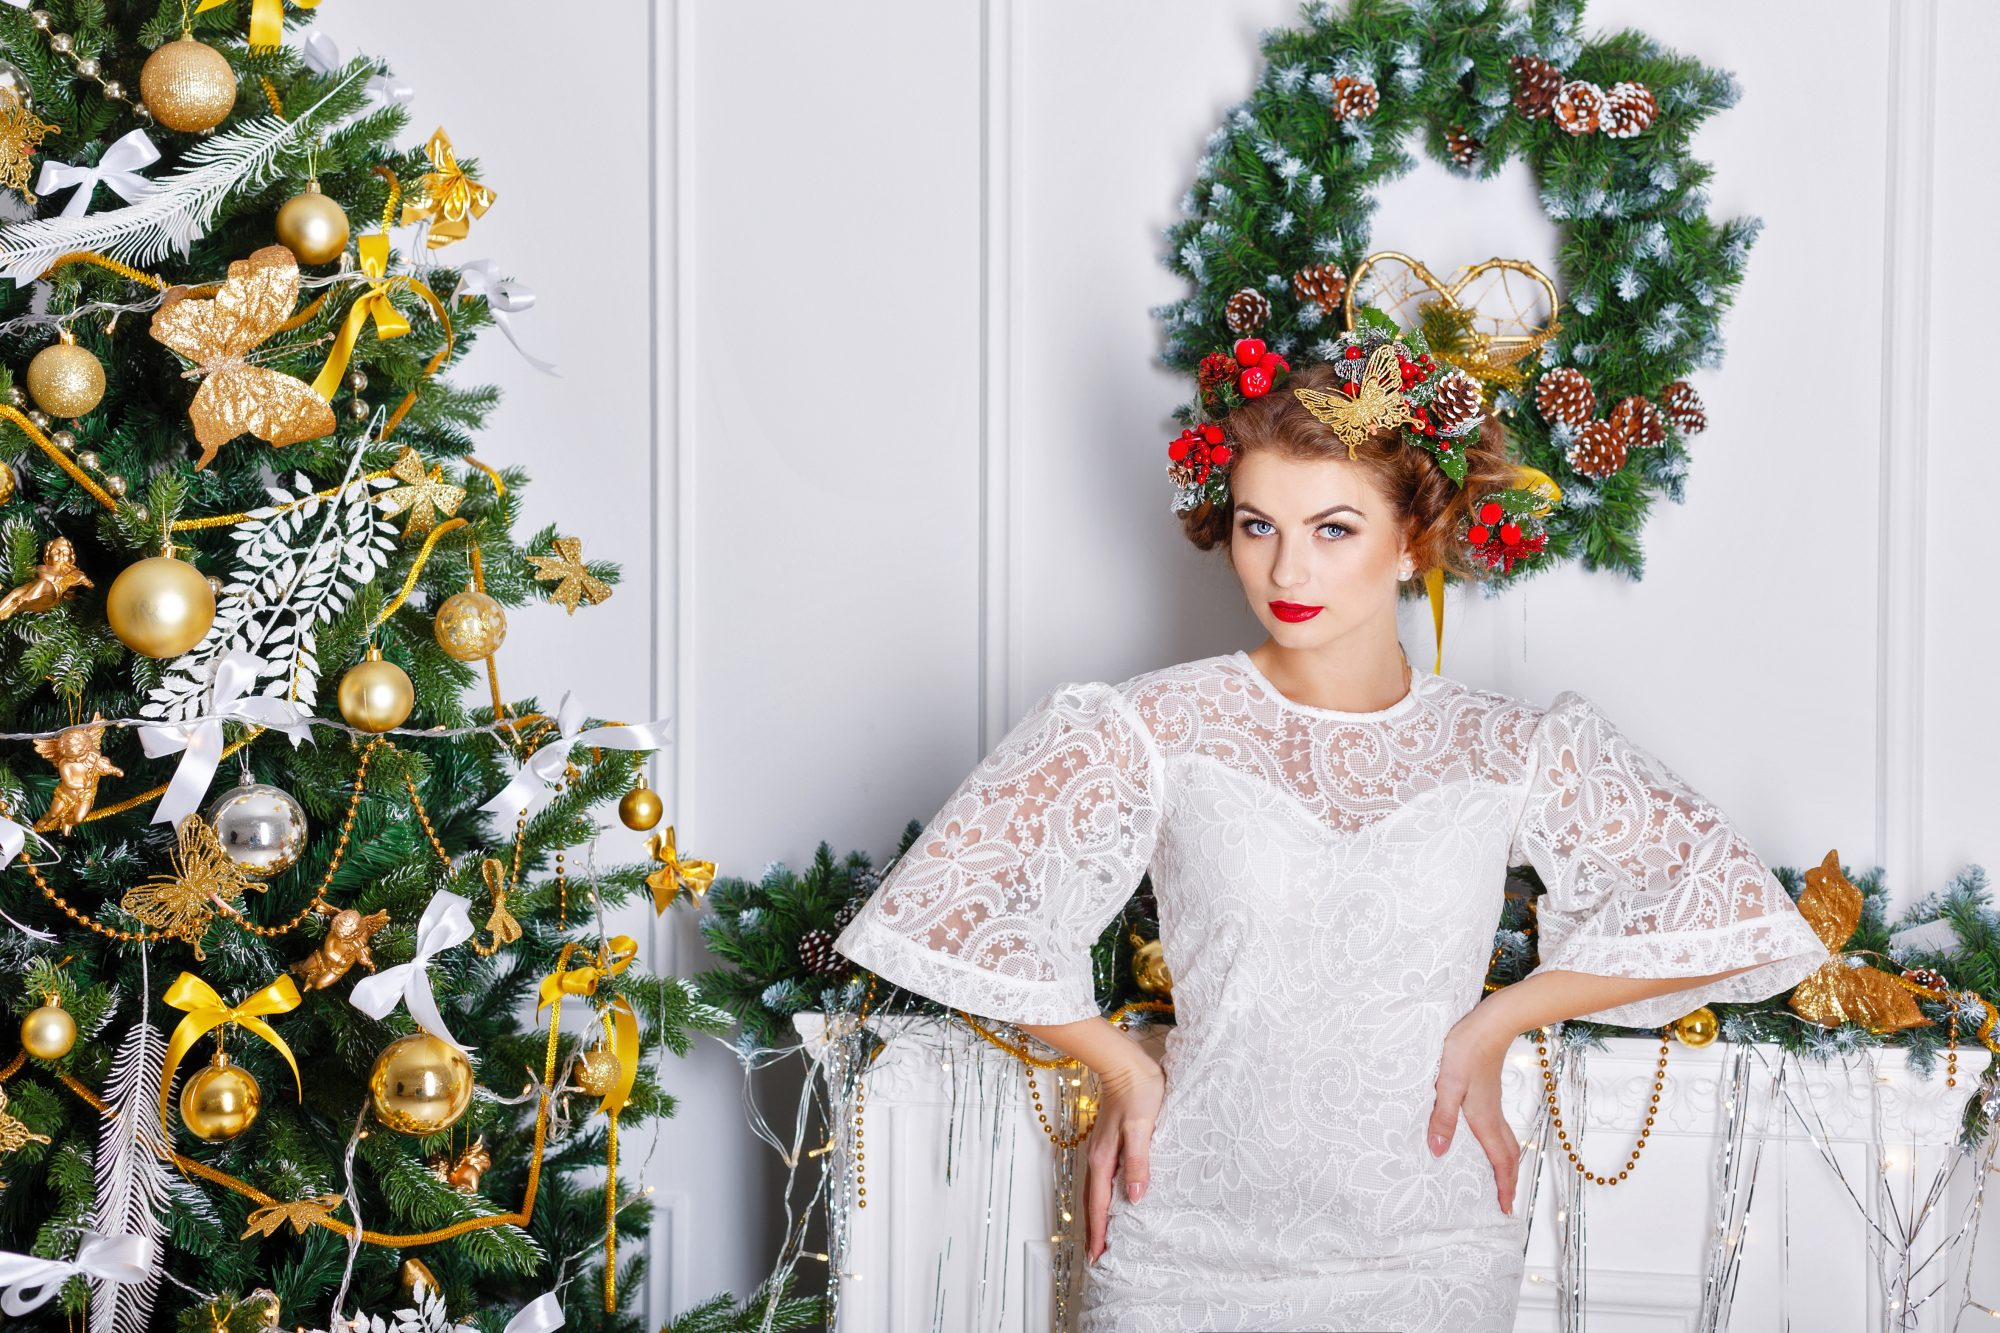 5 Ways to Survive the Holidays With a Narcissist